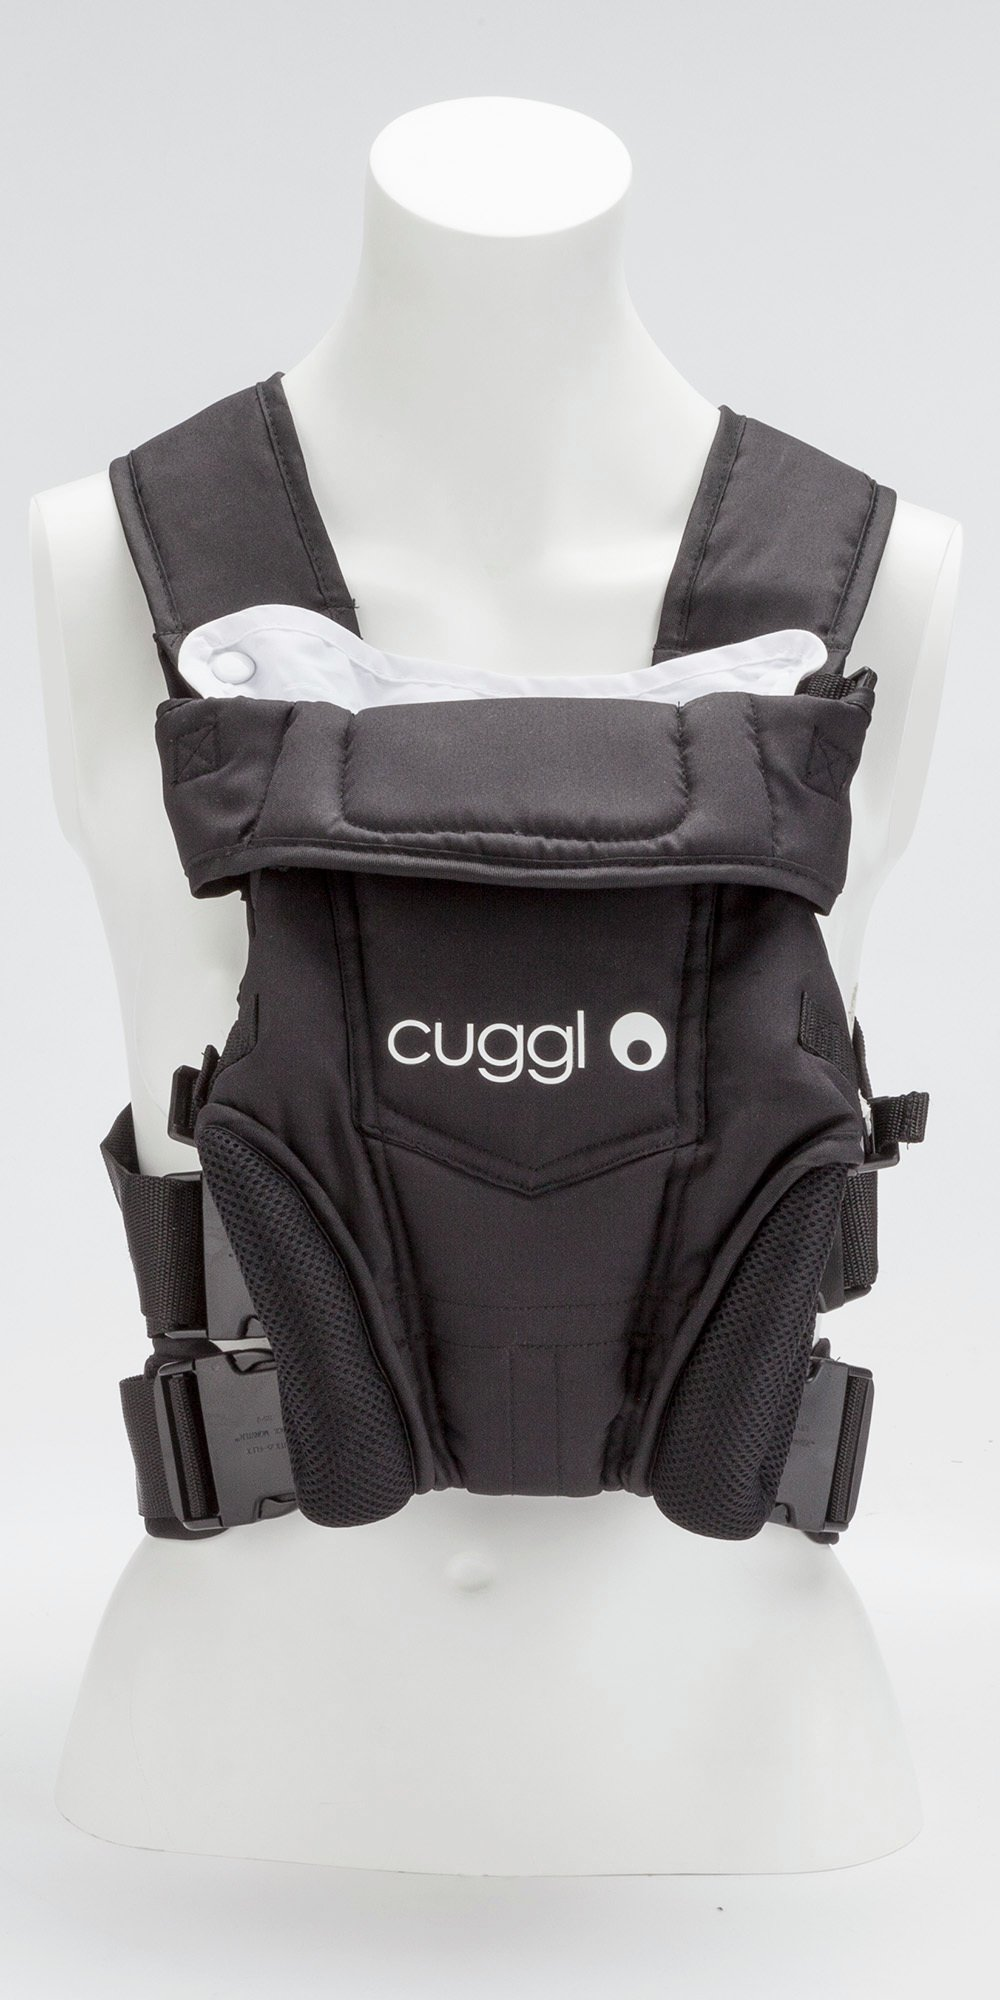 Cuggl Baby Carrier